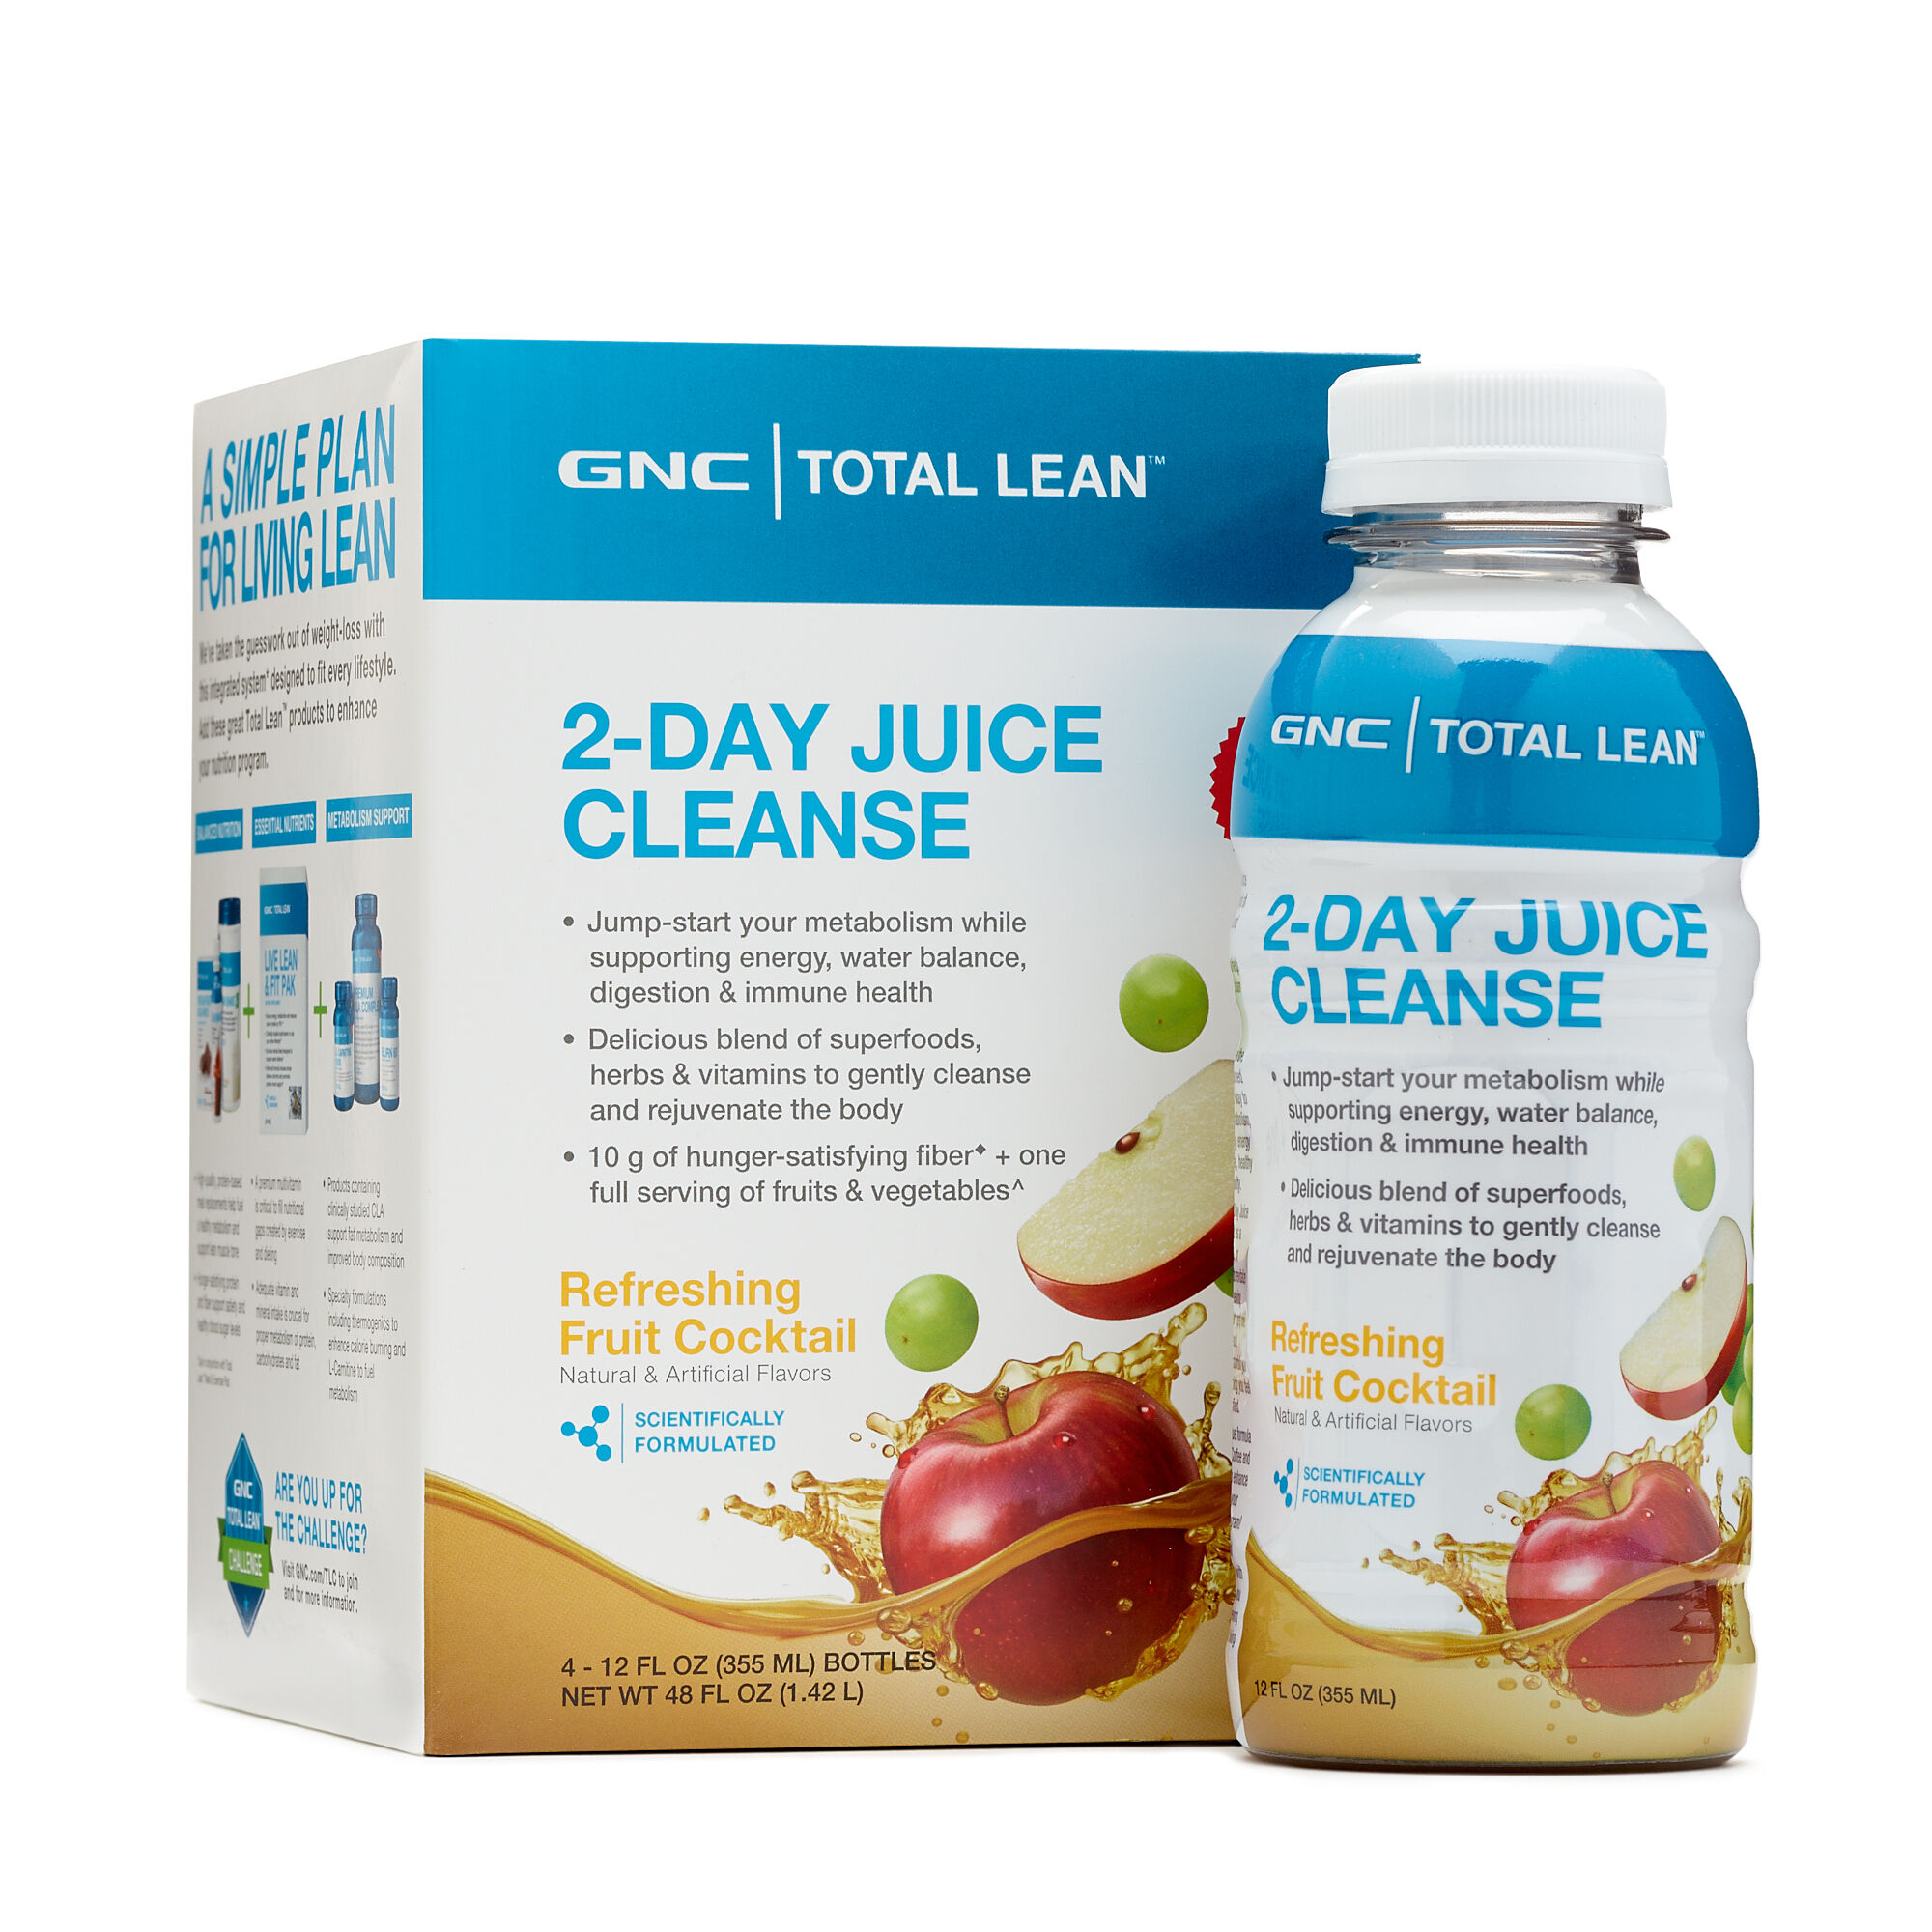 Gnc total lean 2 day juice cleanse refreshing fruit cocktail gnc images 2 day juice cleanse malvernweather Gallery